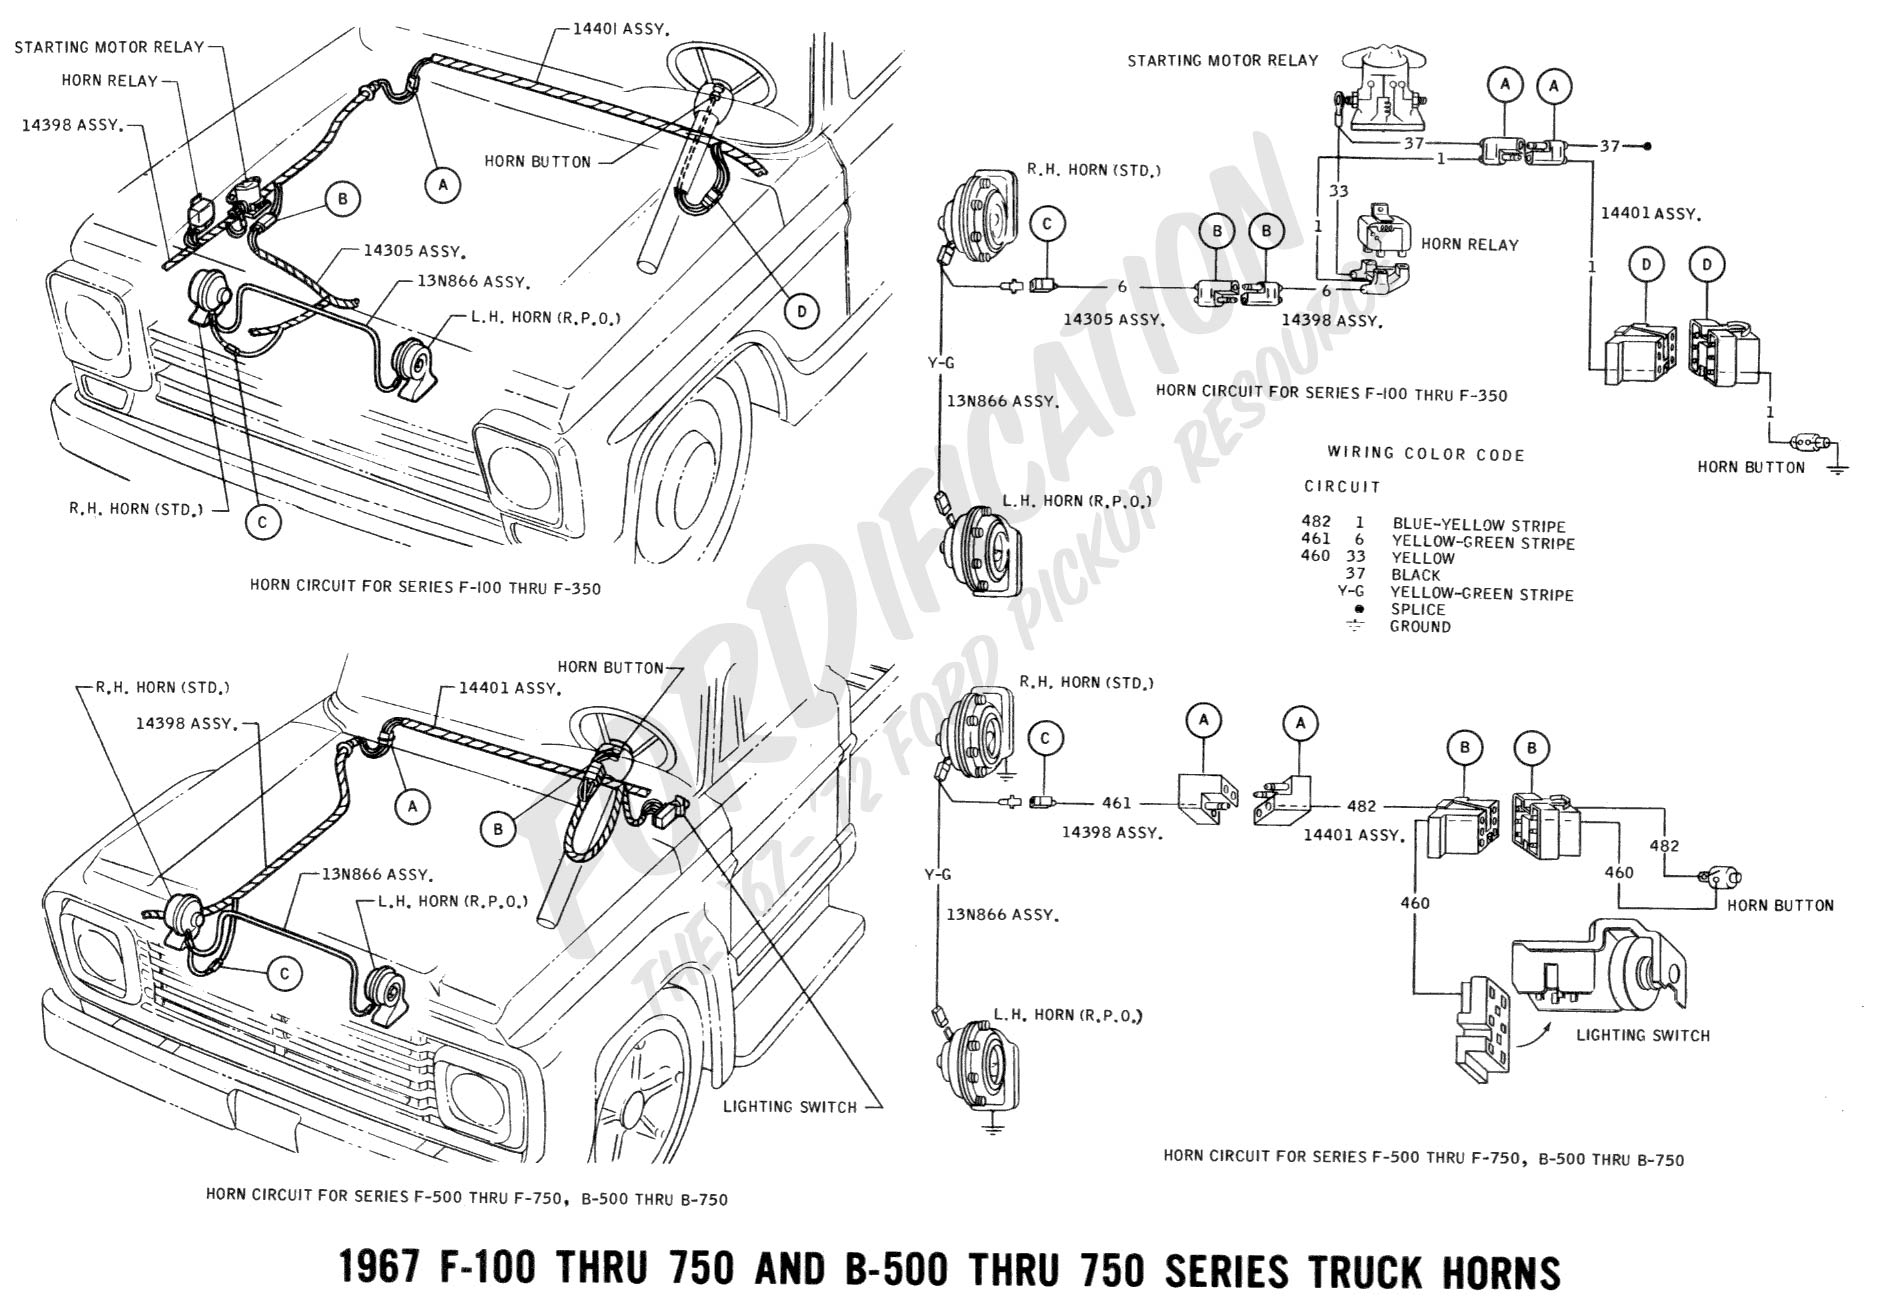 2003 Pontiac Grand Am Stereo Wiring Diagram together with 2014 Dodge Charger Wiring Diagram moreover 7 Pin Rectifier 11 Pole White Wire Question Scooter Doc Forum in addition 1253902 Rear Defroster Install Need Wiring Diagrams Switch further 2008 Gmc Envoy Bose Stereo Wiring Diagram. on radio wiring diagram dodge